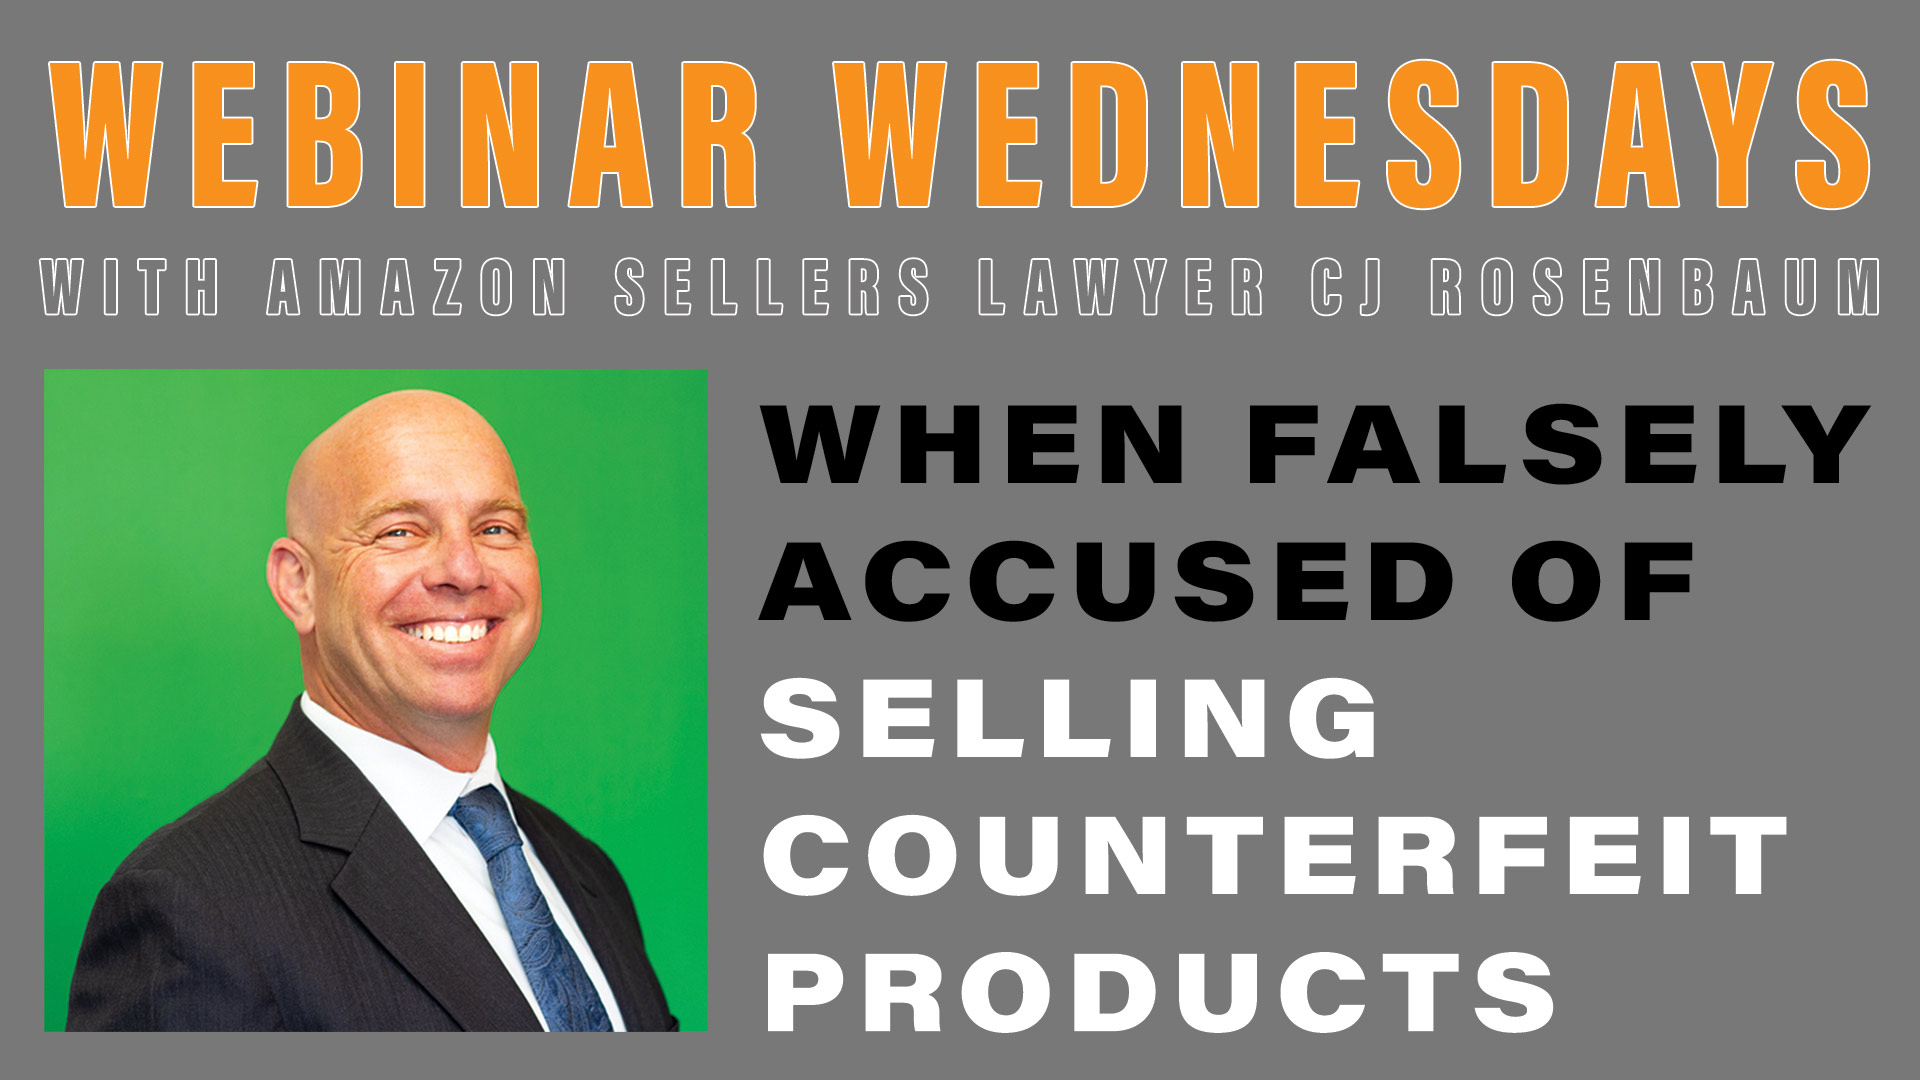 Important Sellers' Rights When Falsely Accused of Selling Counterfeits